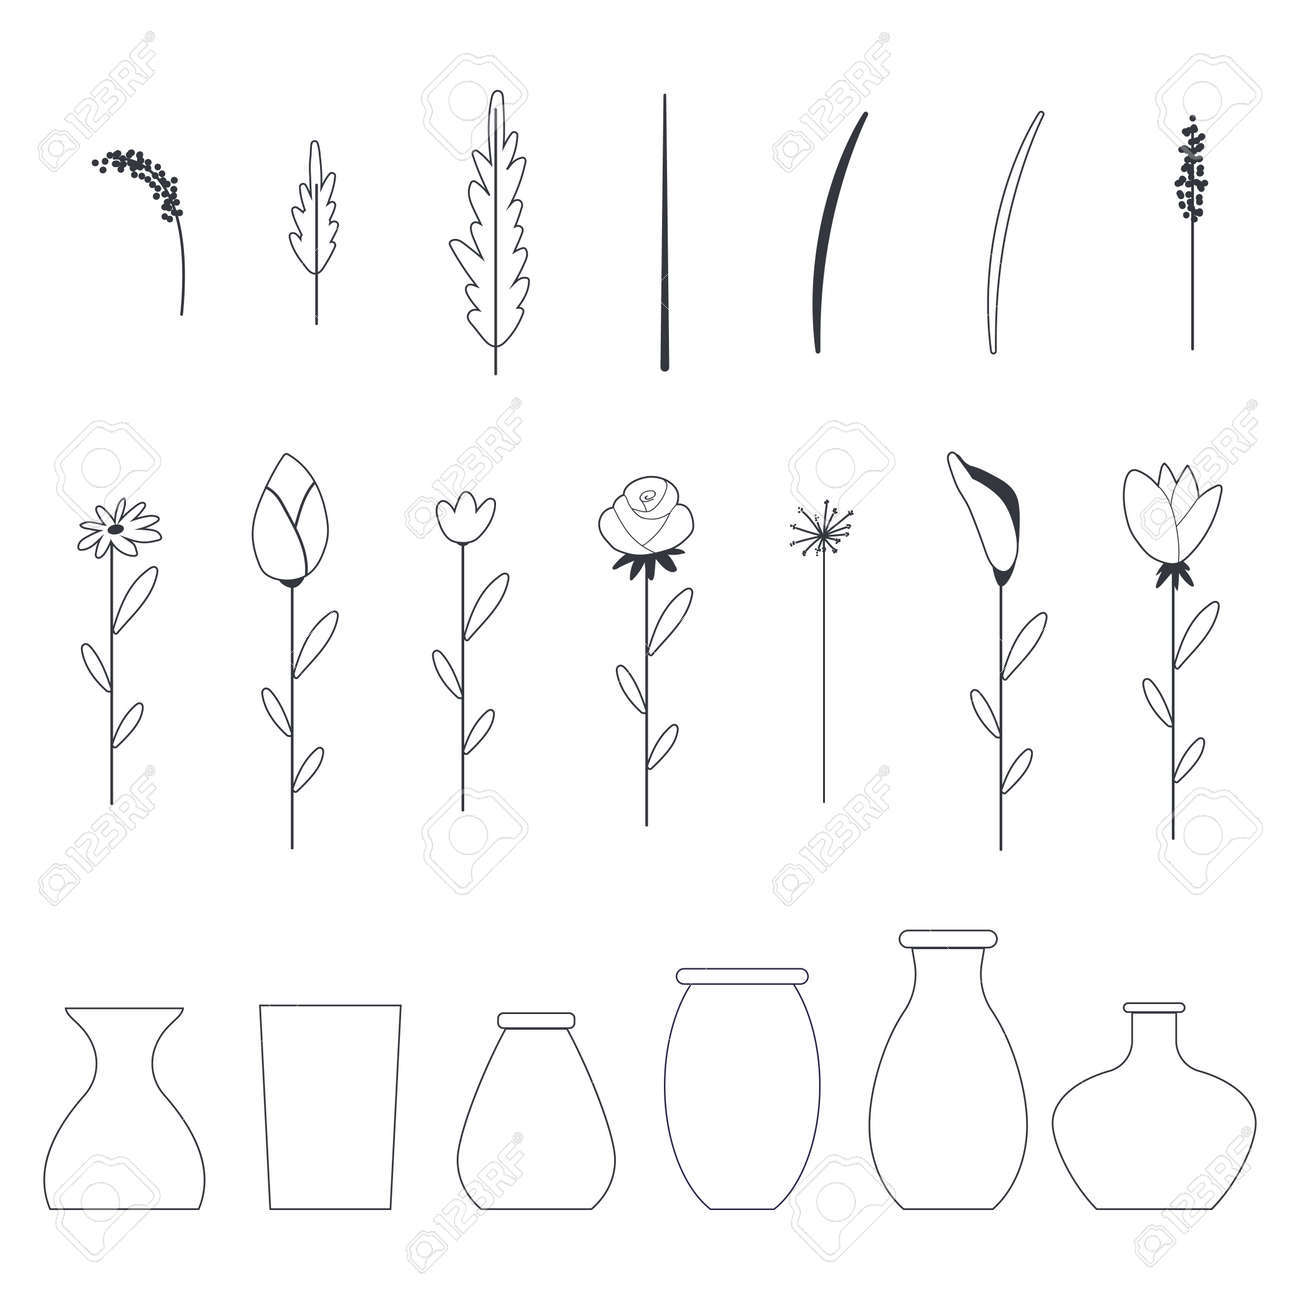 Flowers and vases vector outline icons set isolated on a white background. - 170643532